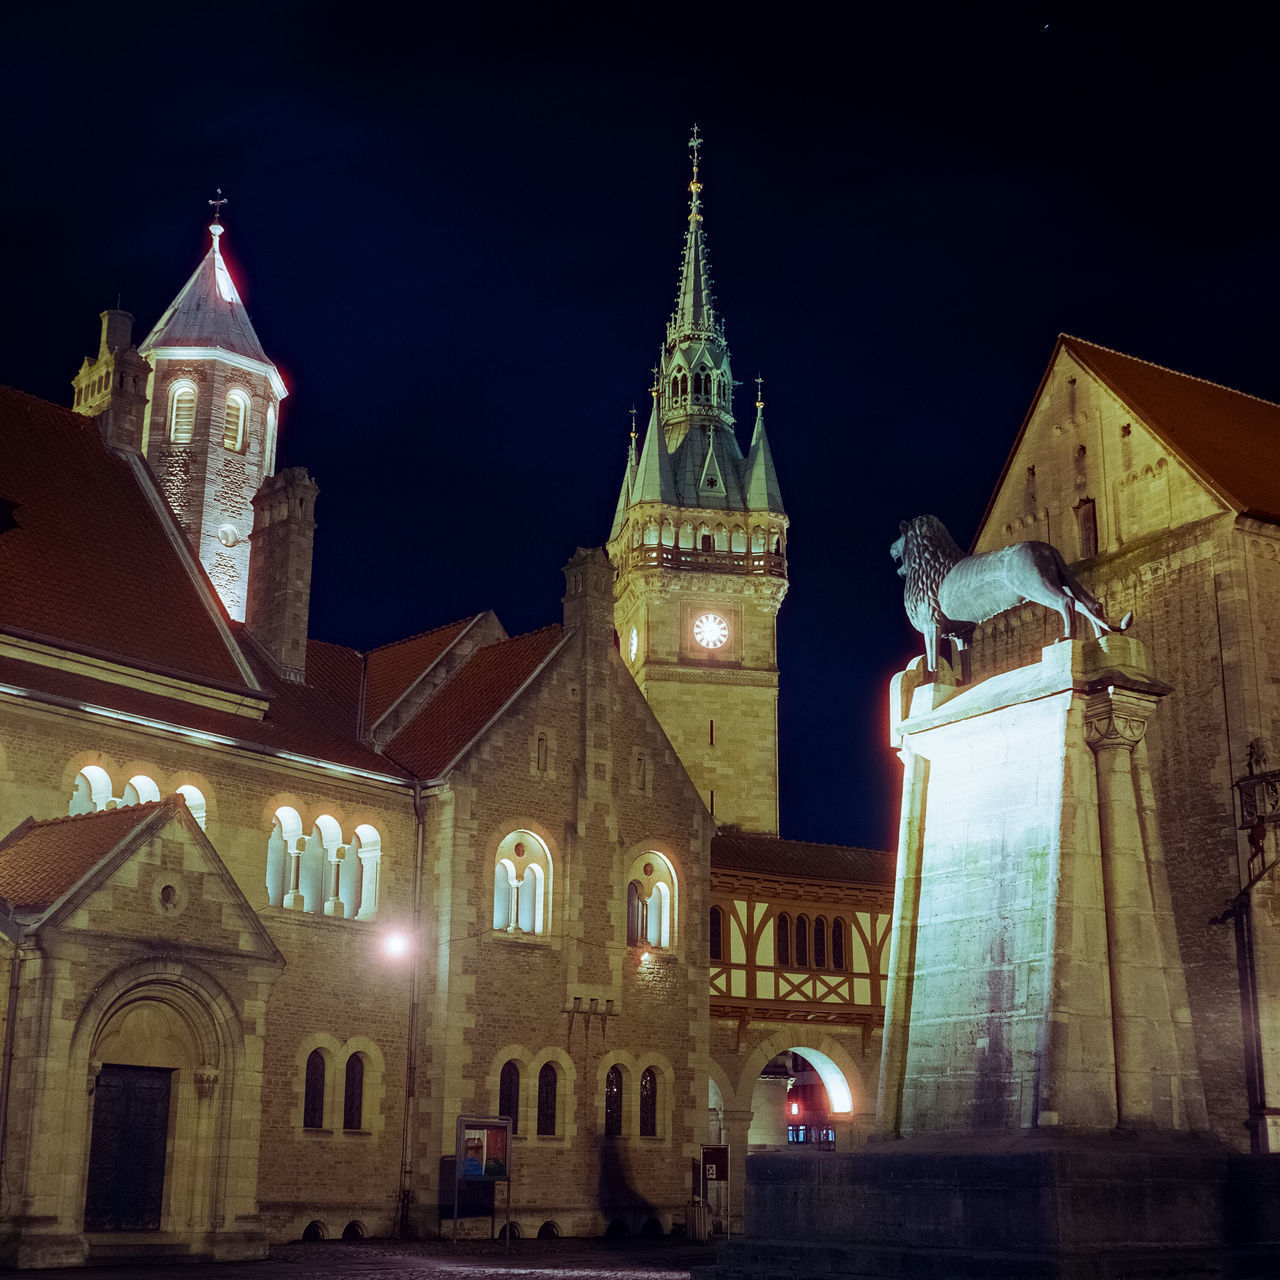 architecture, built structure, building exterior, night, building, place of worship, belief, religion, illuminated, spirituality, travel destinations, sky, tower, low angle view, travel, clock tower, no people, spire, clock, outdoors